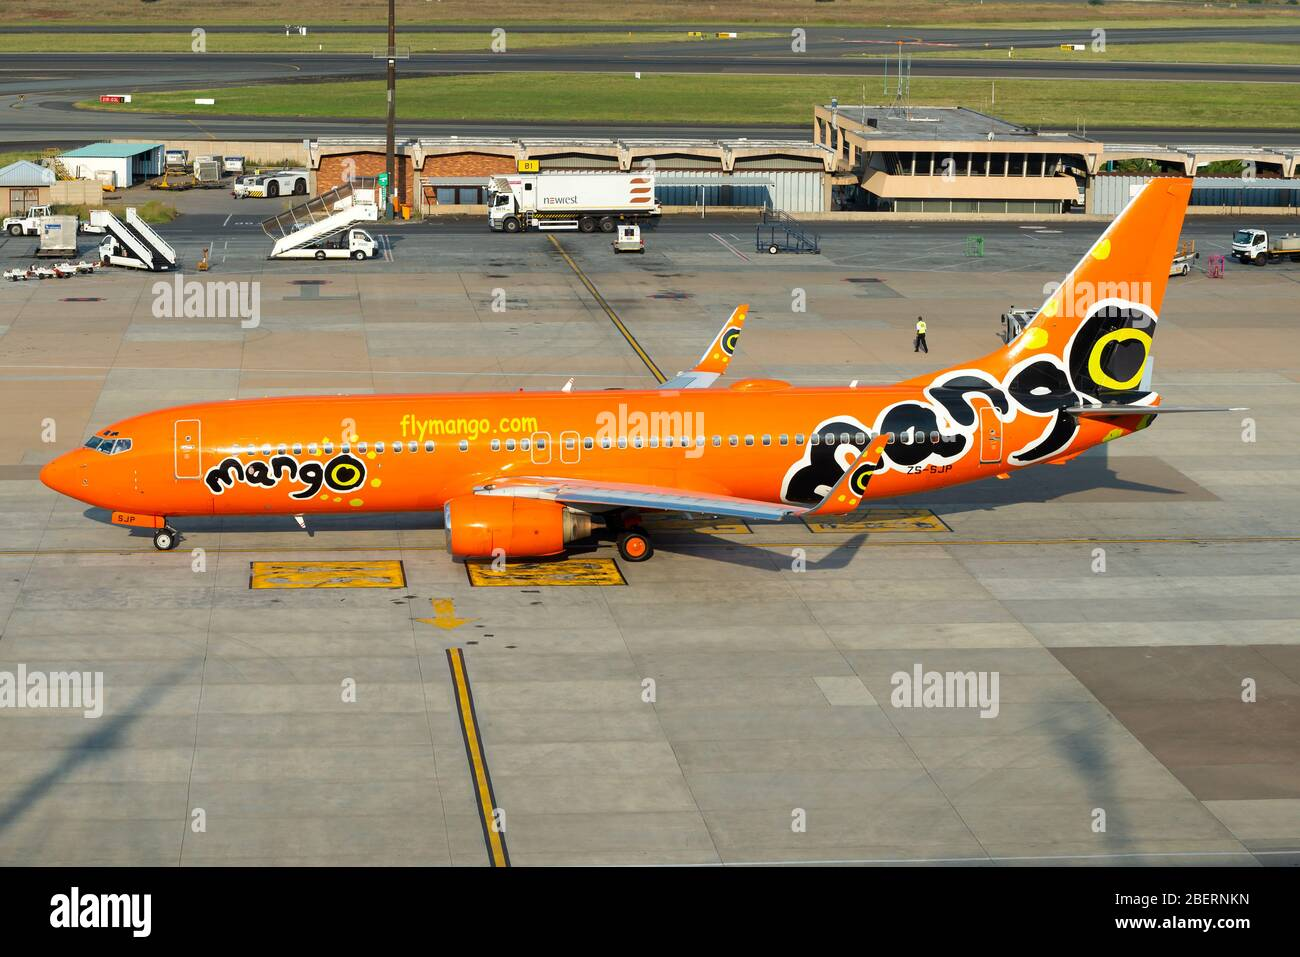 Mango Airlines Boeing 737 At O R Tambo Airport In Johannesburg South Africa Aircraft 737 800 Registered As Zs Sjp Airline From South Africa Stock Photo Alamy